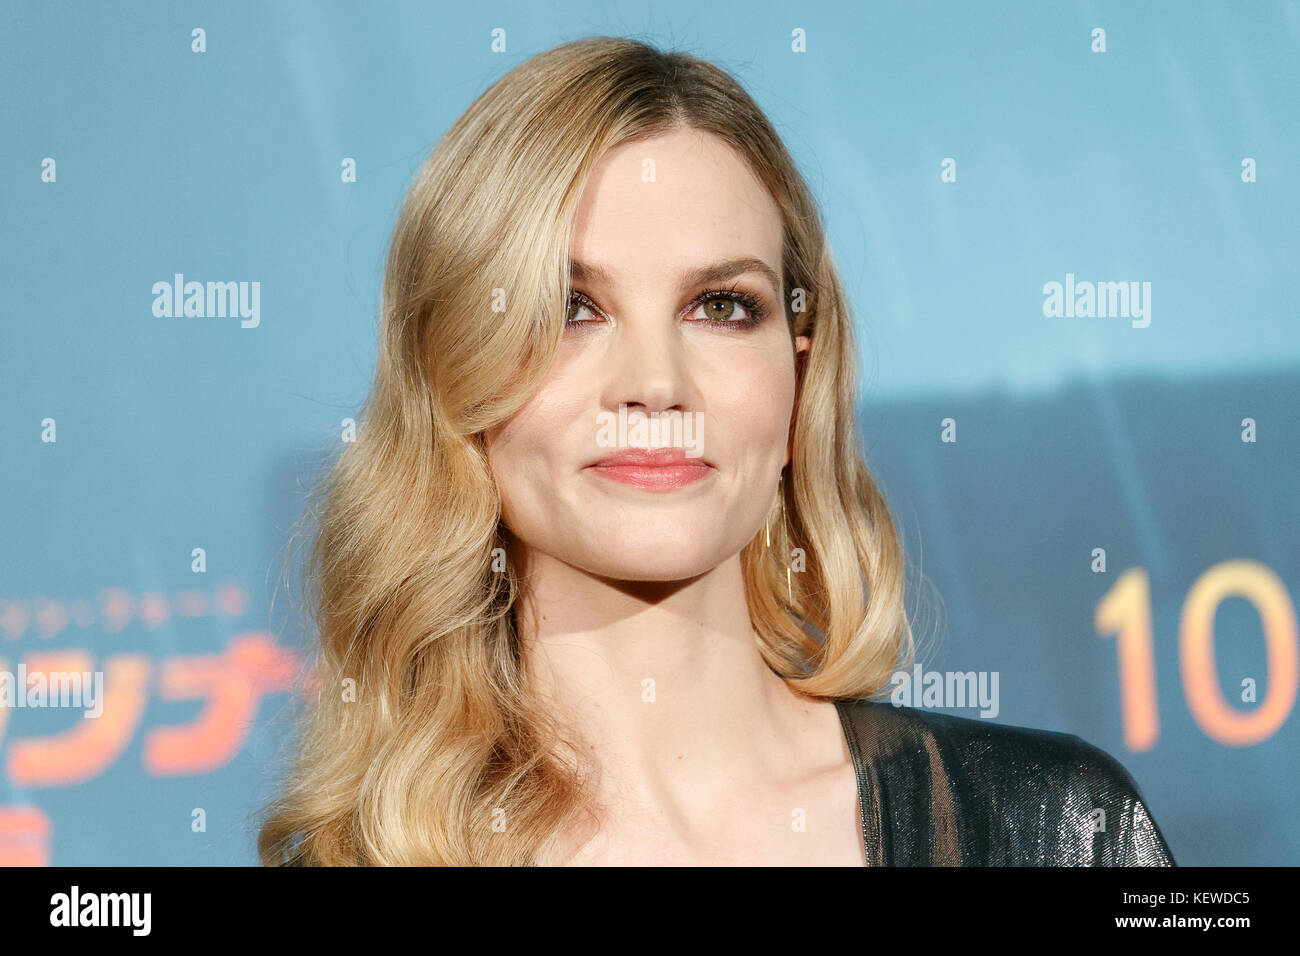 Tokyo, Japan. 23rd October, 2017. Actress Sylvia Hoeks attends a Japan Premiere for the film Blade Runner 2049 on - Stock Image